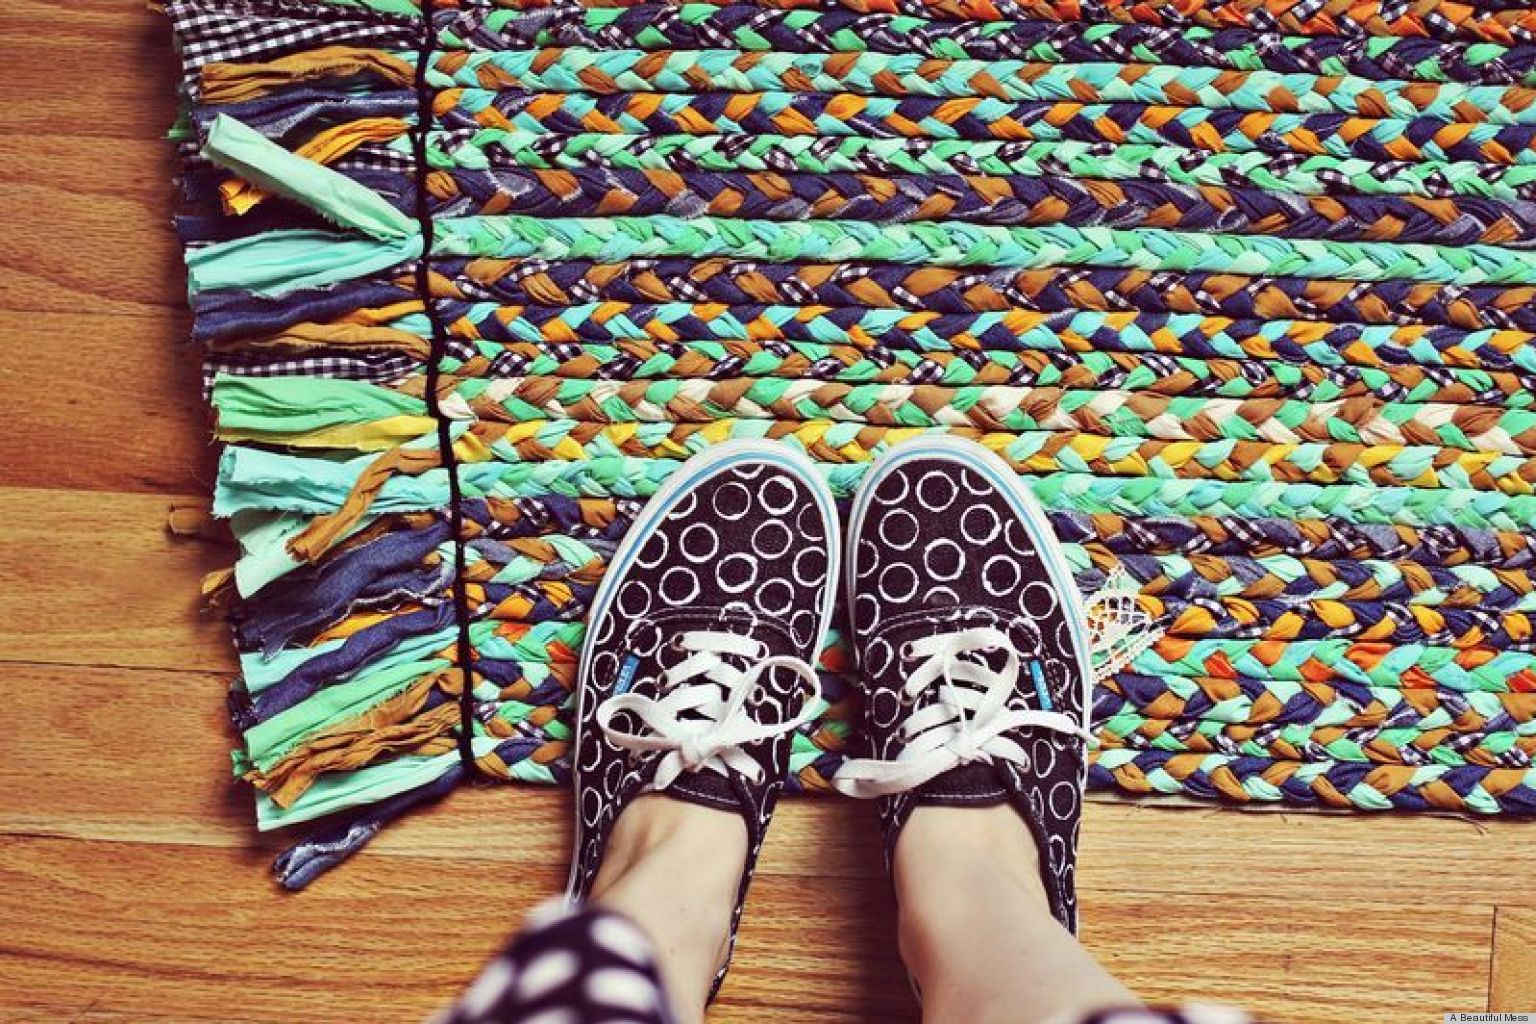 Como Hacer Alfombras De Trapillo Make A Bright And Colorful Braided Rug With Fabric Scraps